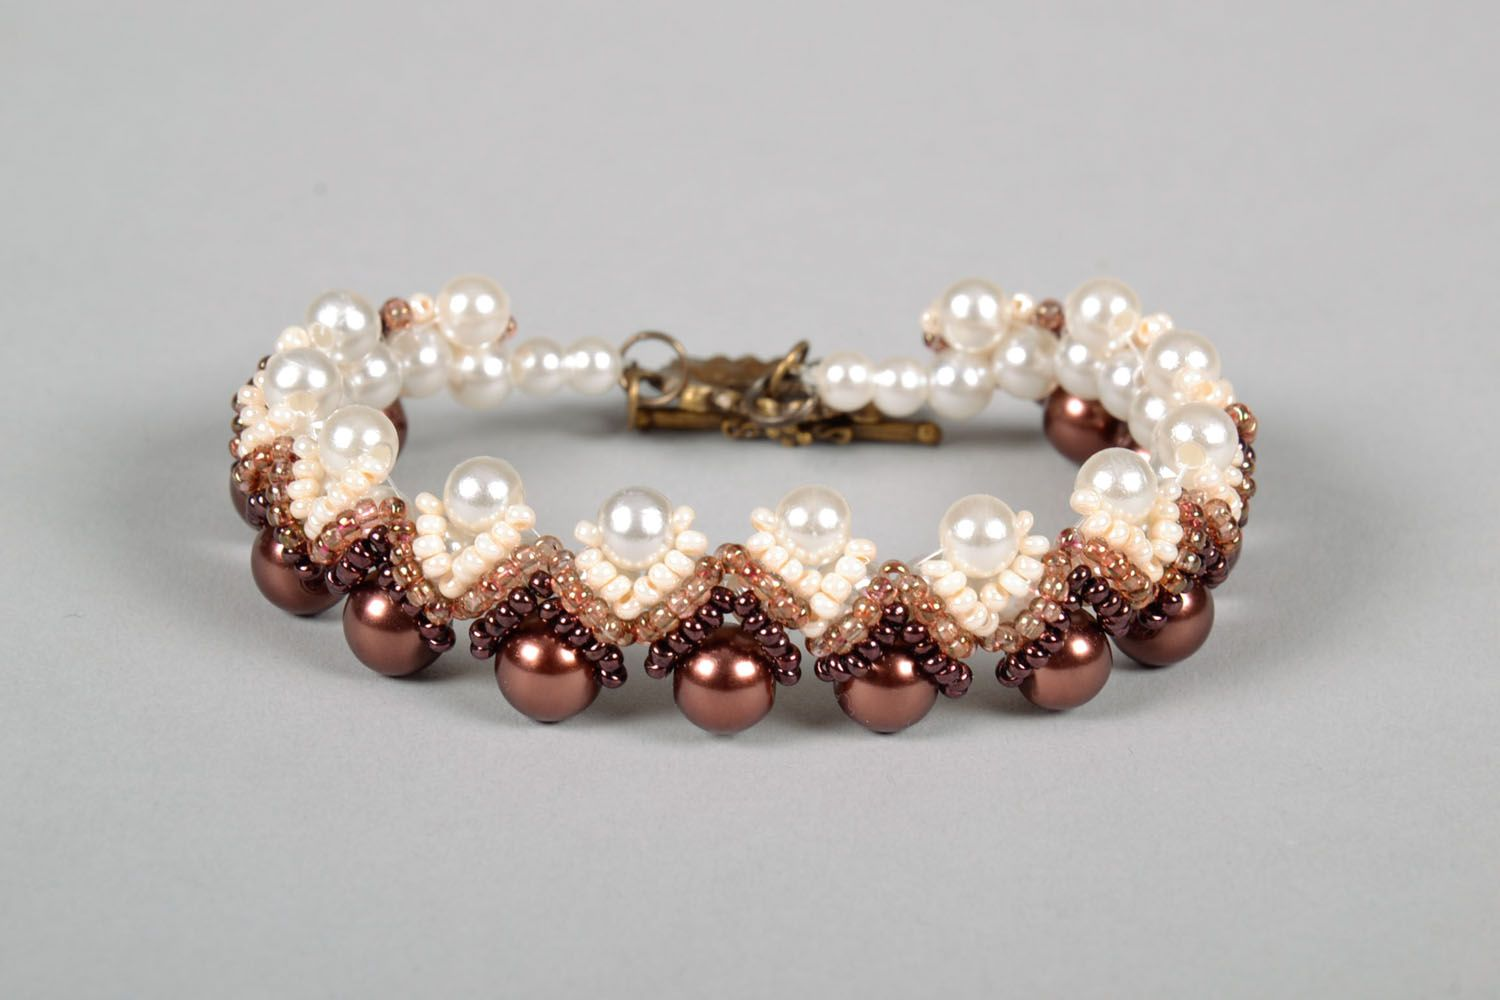 Bracelet with artificial pearls photo 2